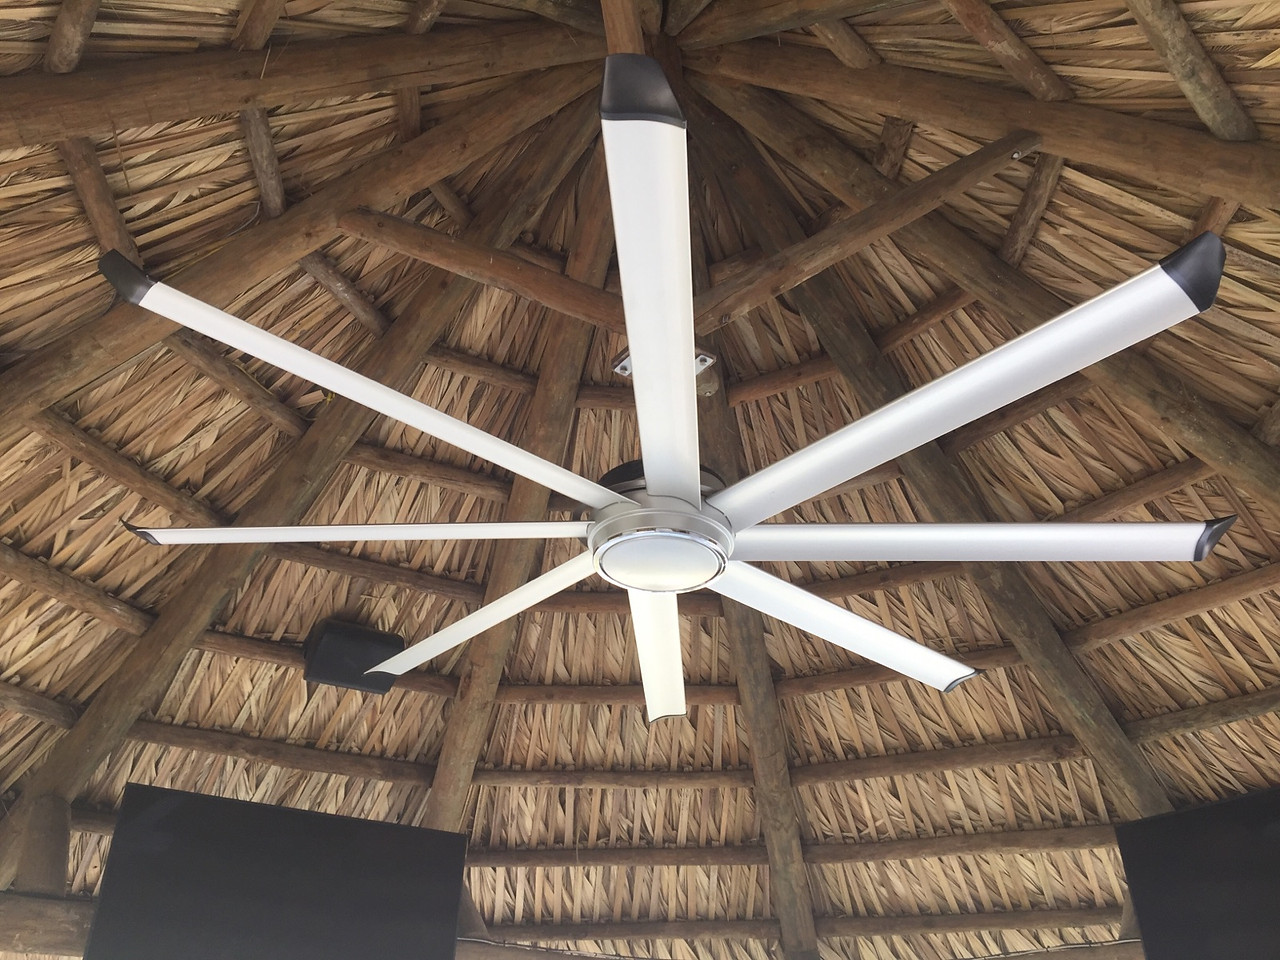 straw patio with surround sound and steel fan